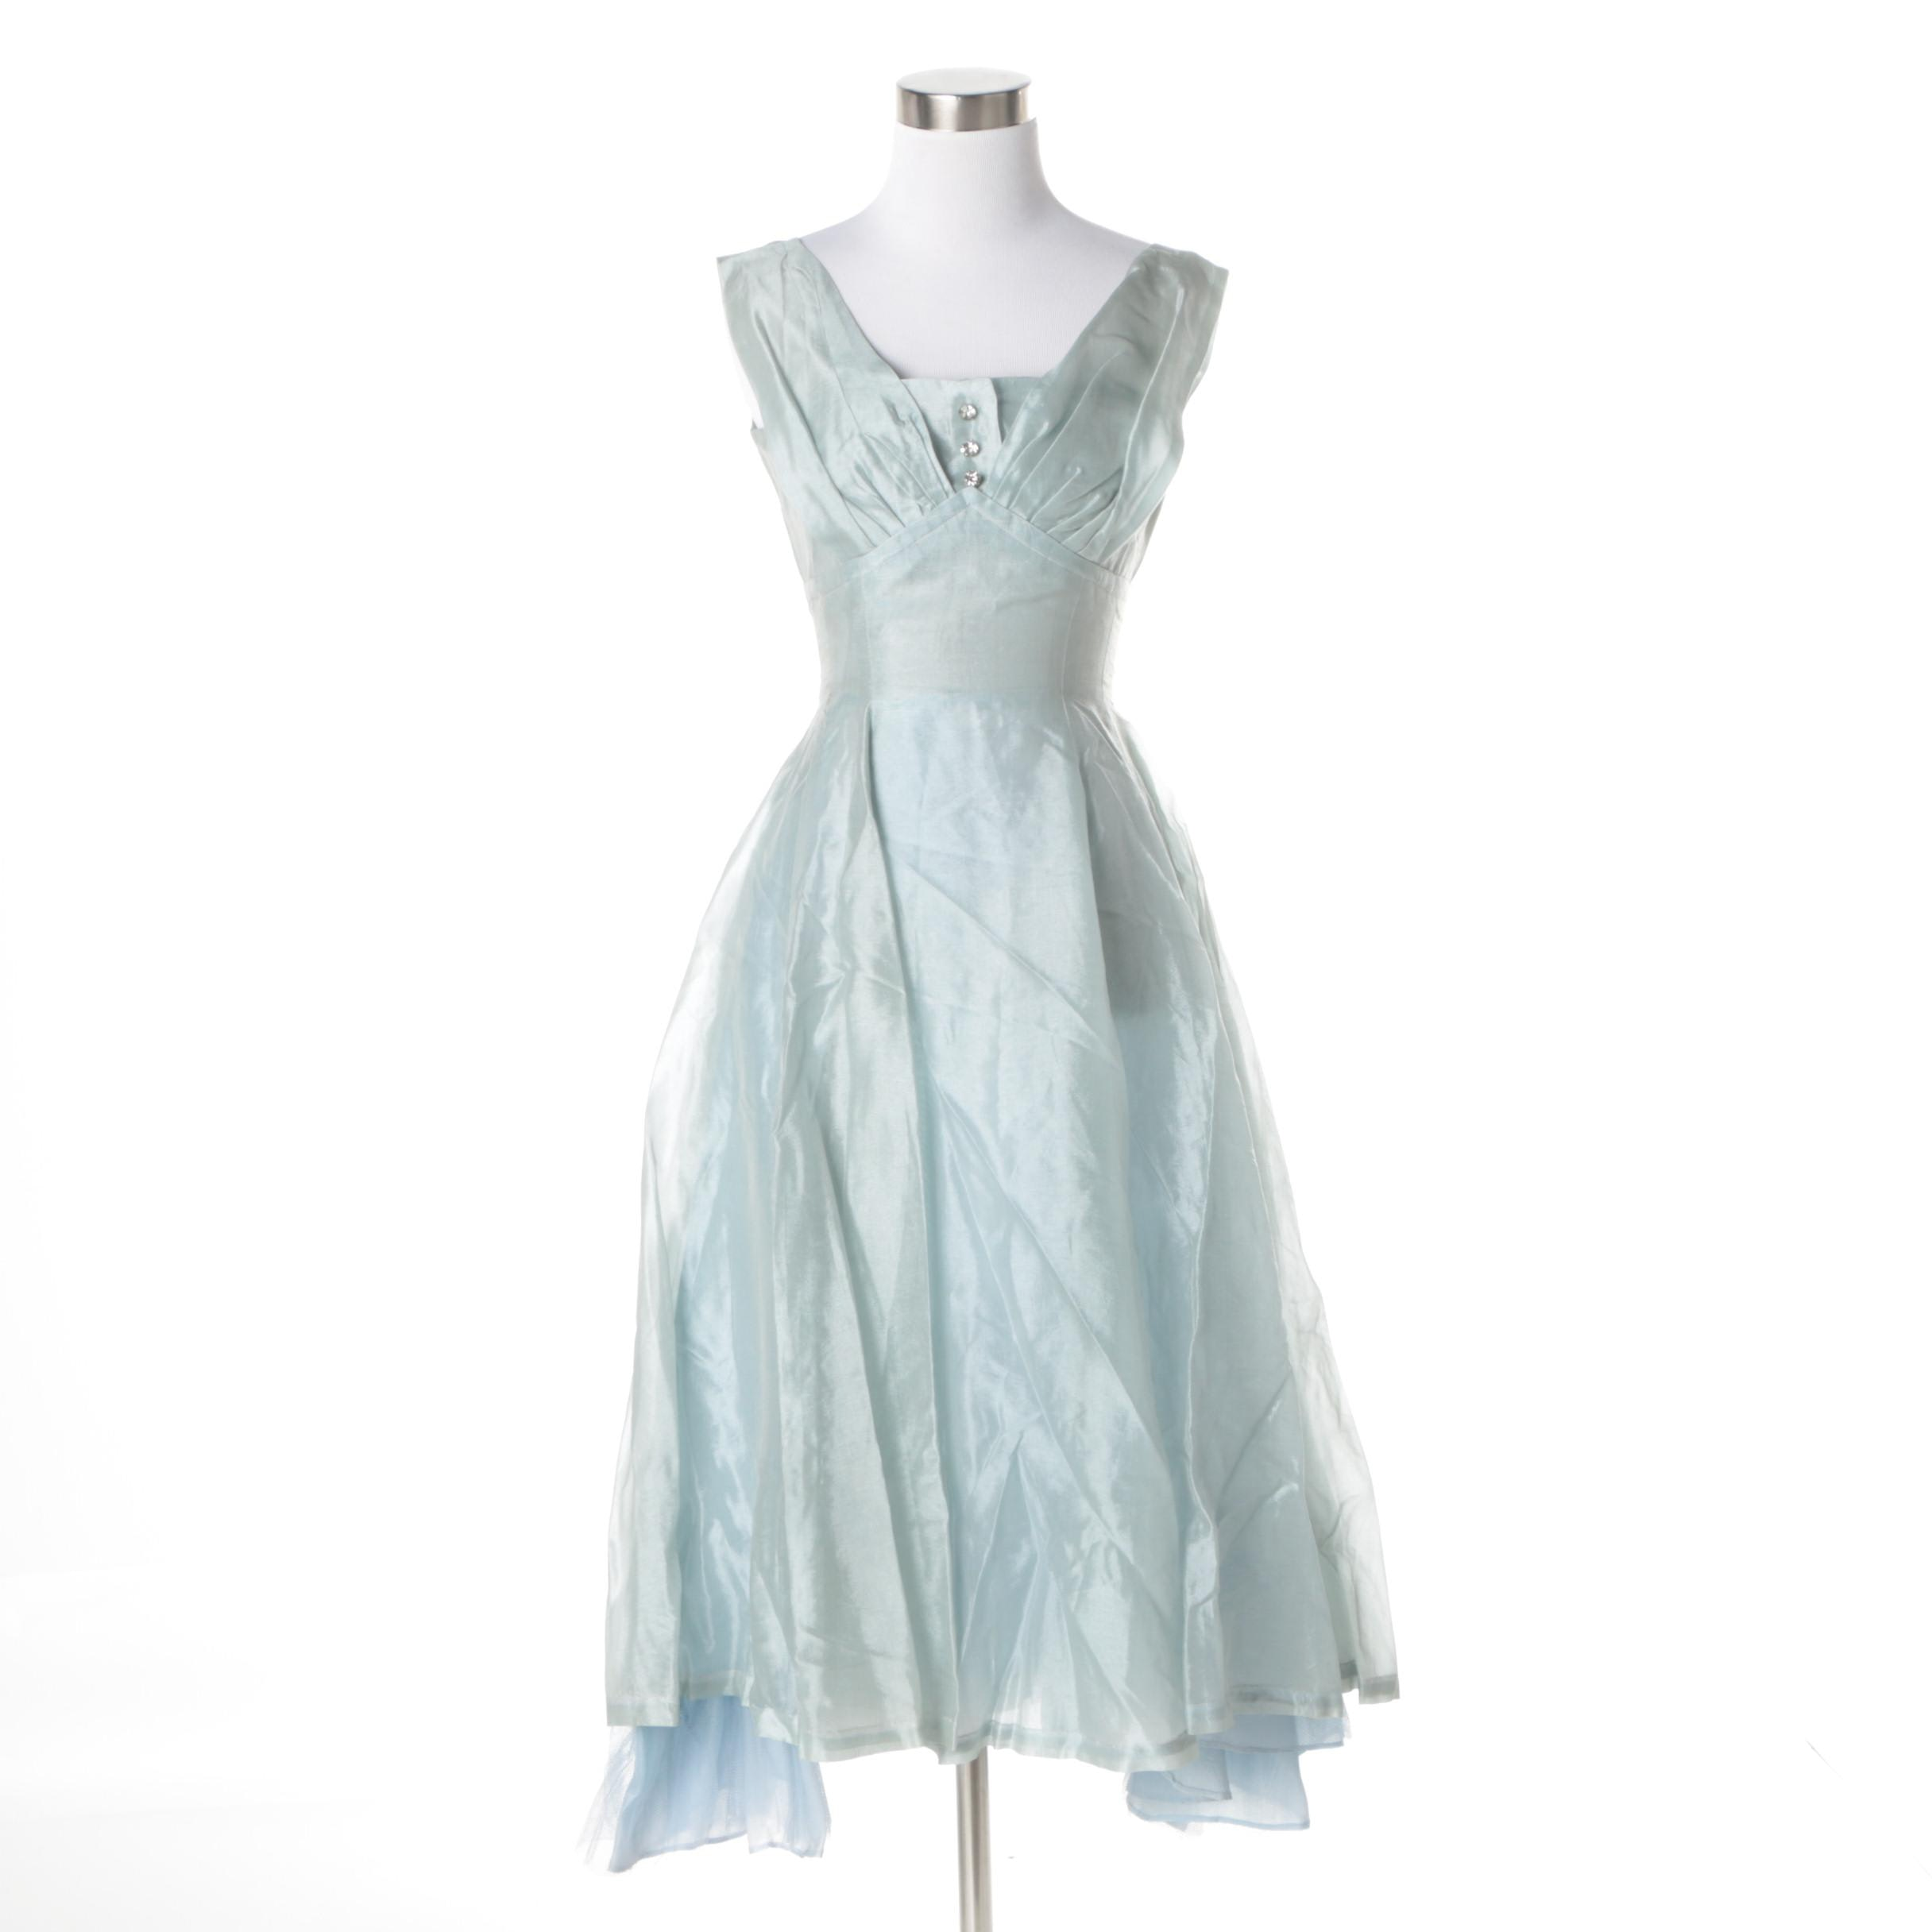 Circa 1950s Vintage Cocktail Dress